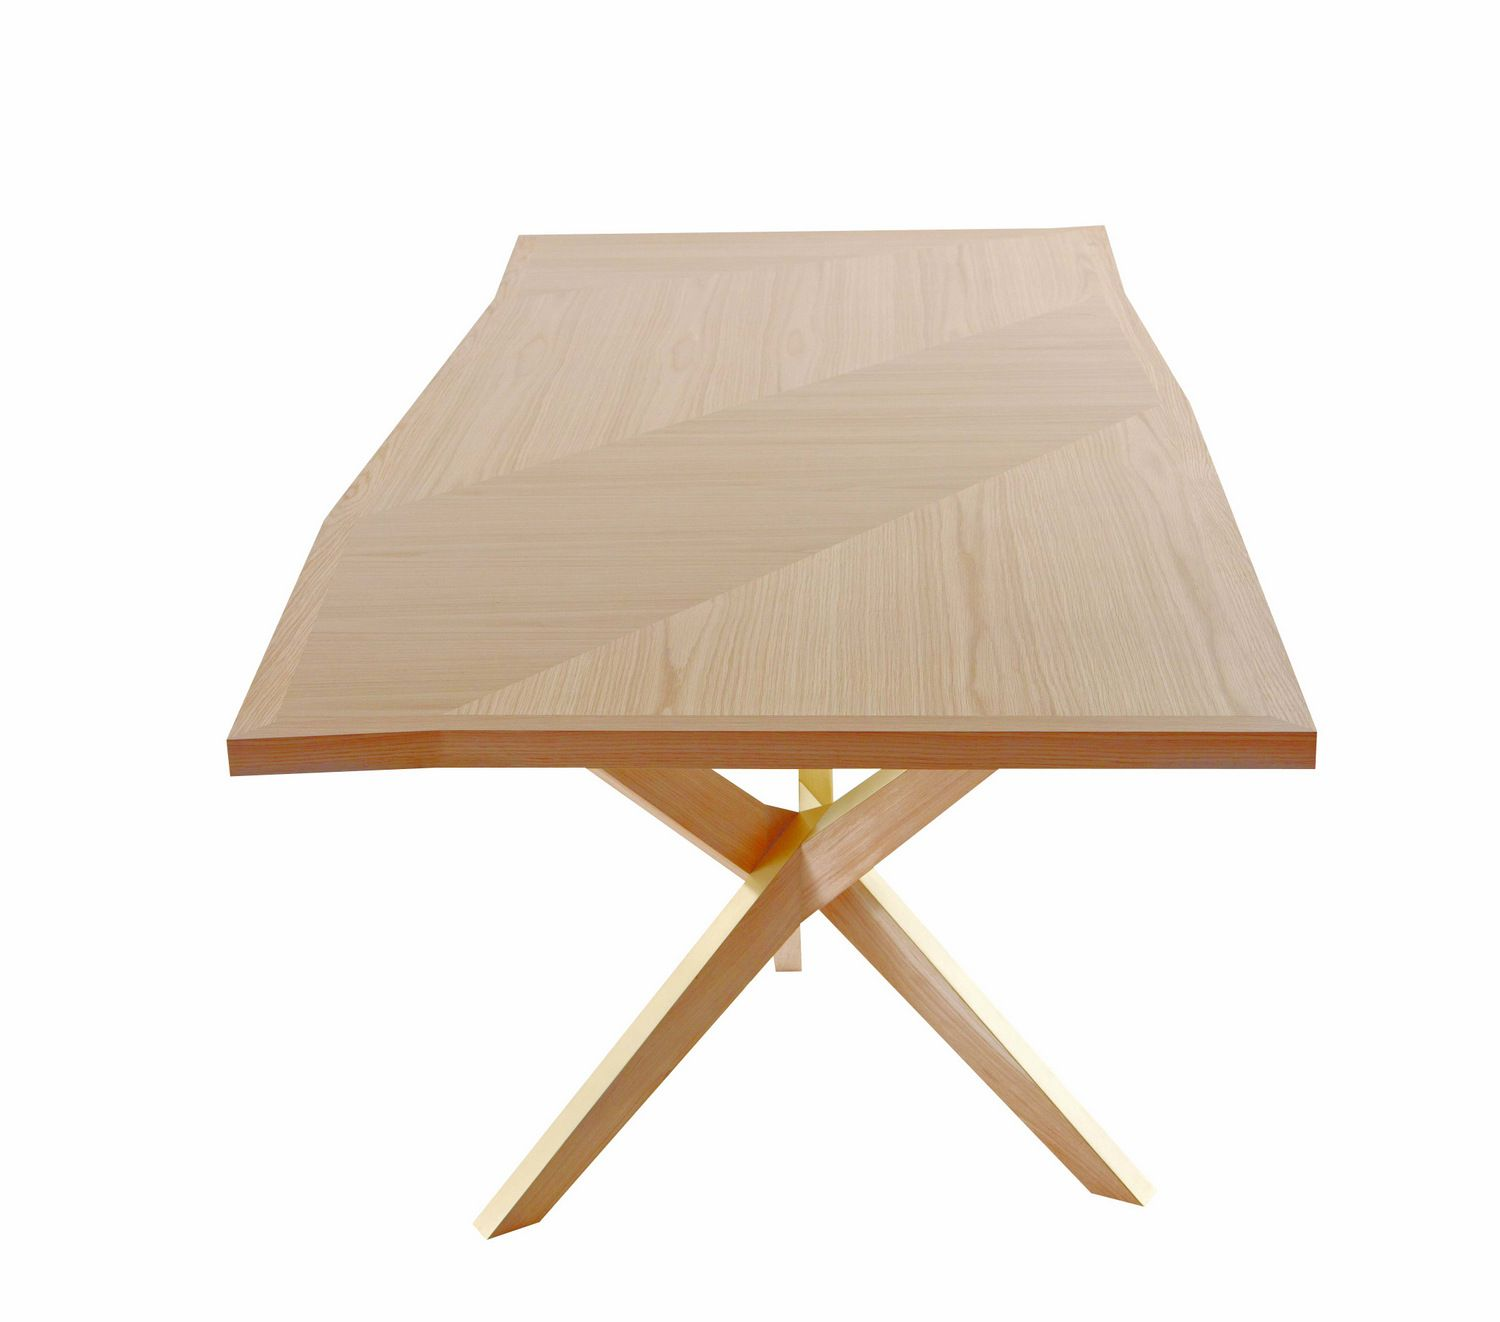 Table rectangulaire en bois JANE by ROCHE BOBOIS design Christophe ...